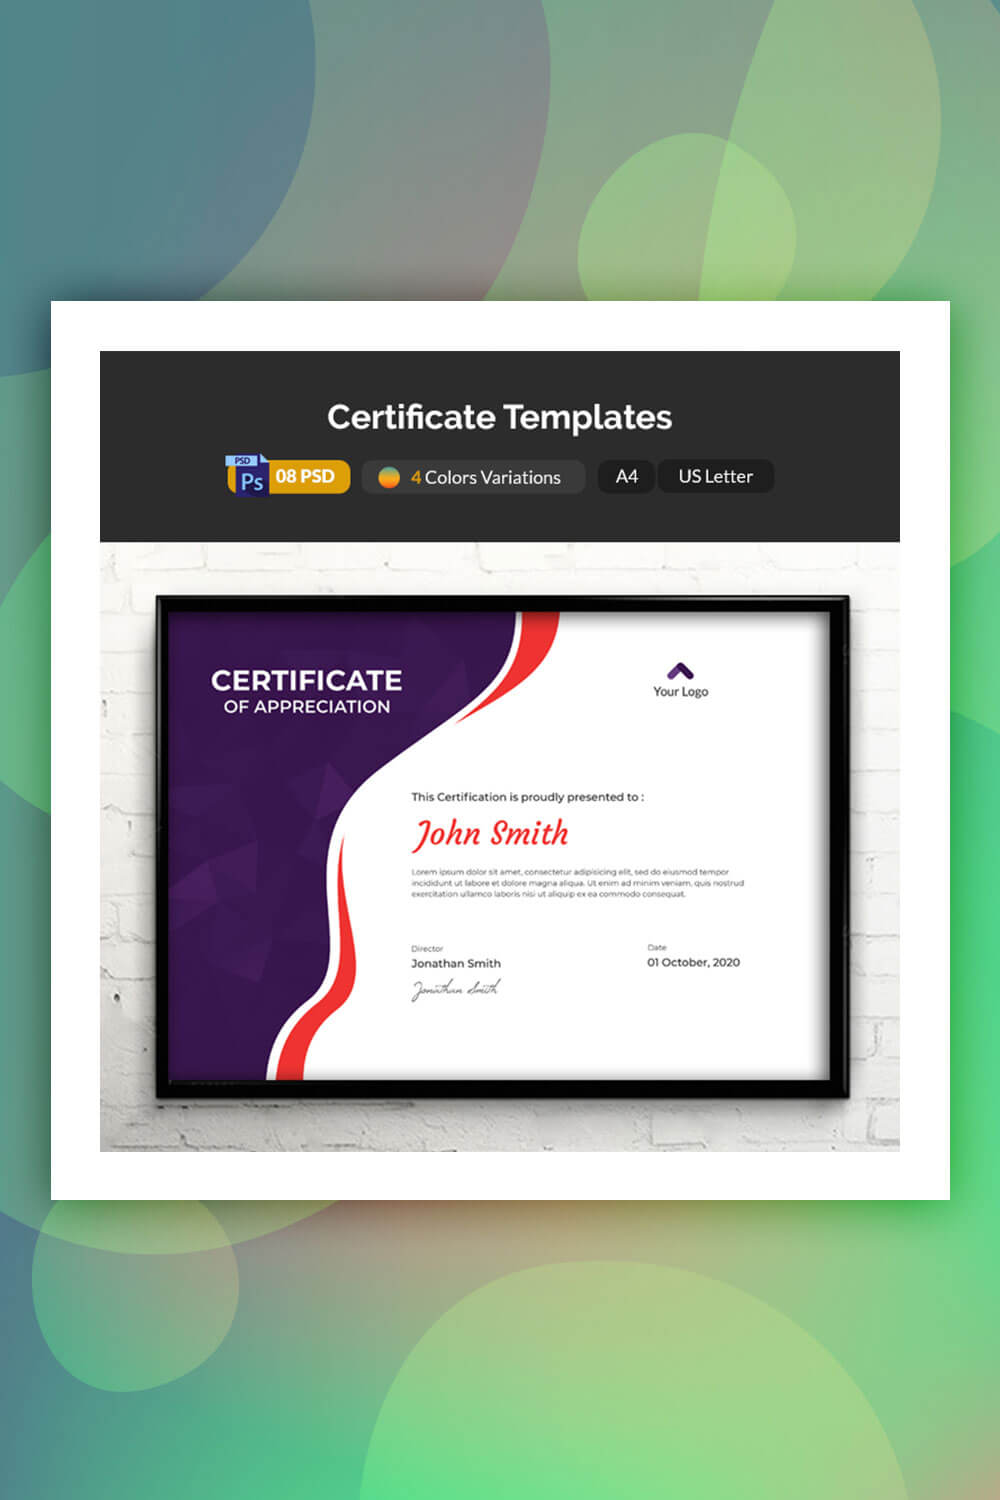 19 Attention-Grabbing Certificate Templates - Colorlib pertaining to No Certificate Templates Could Be Found